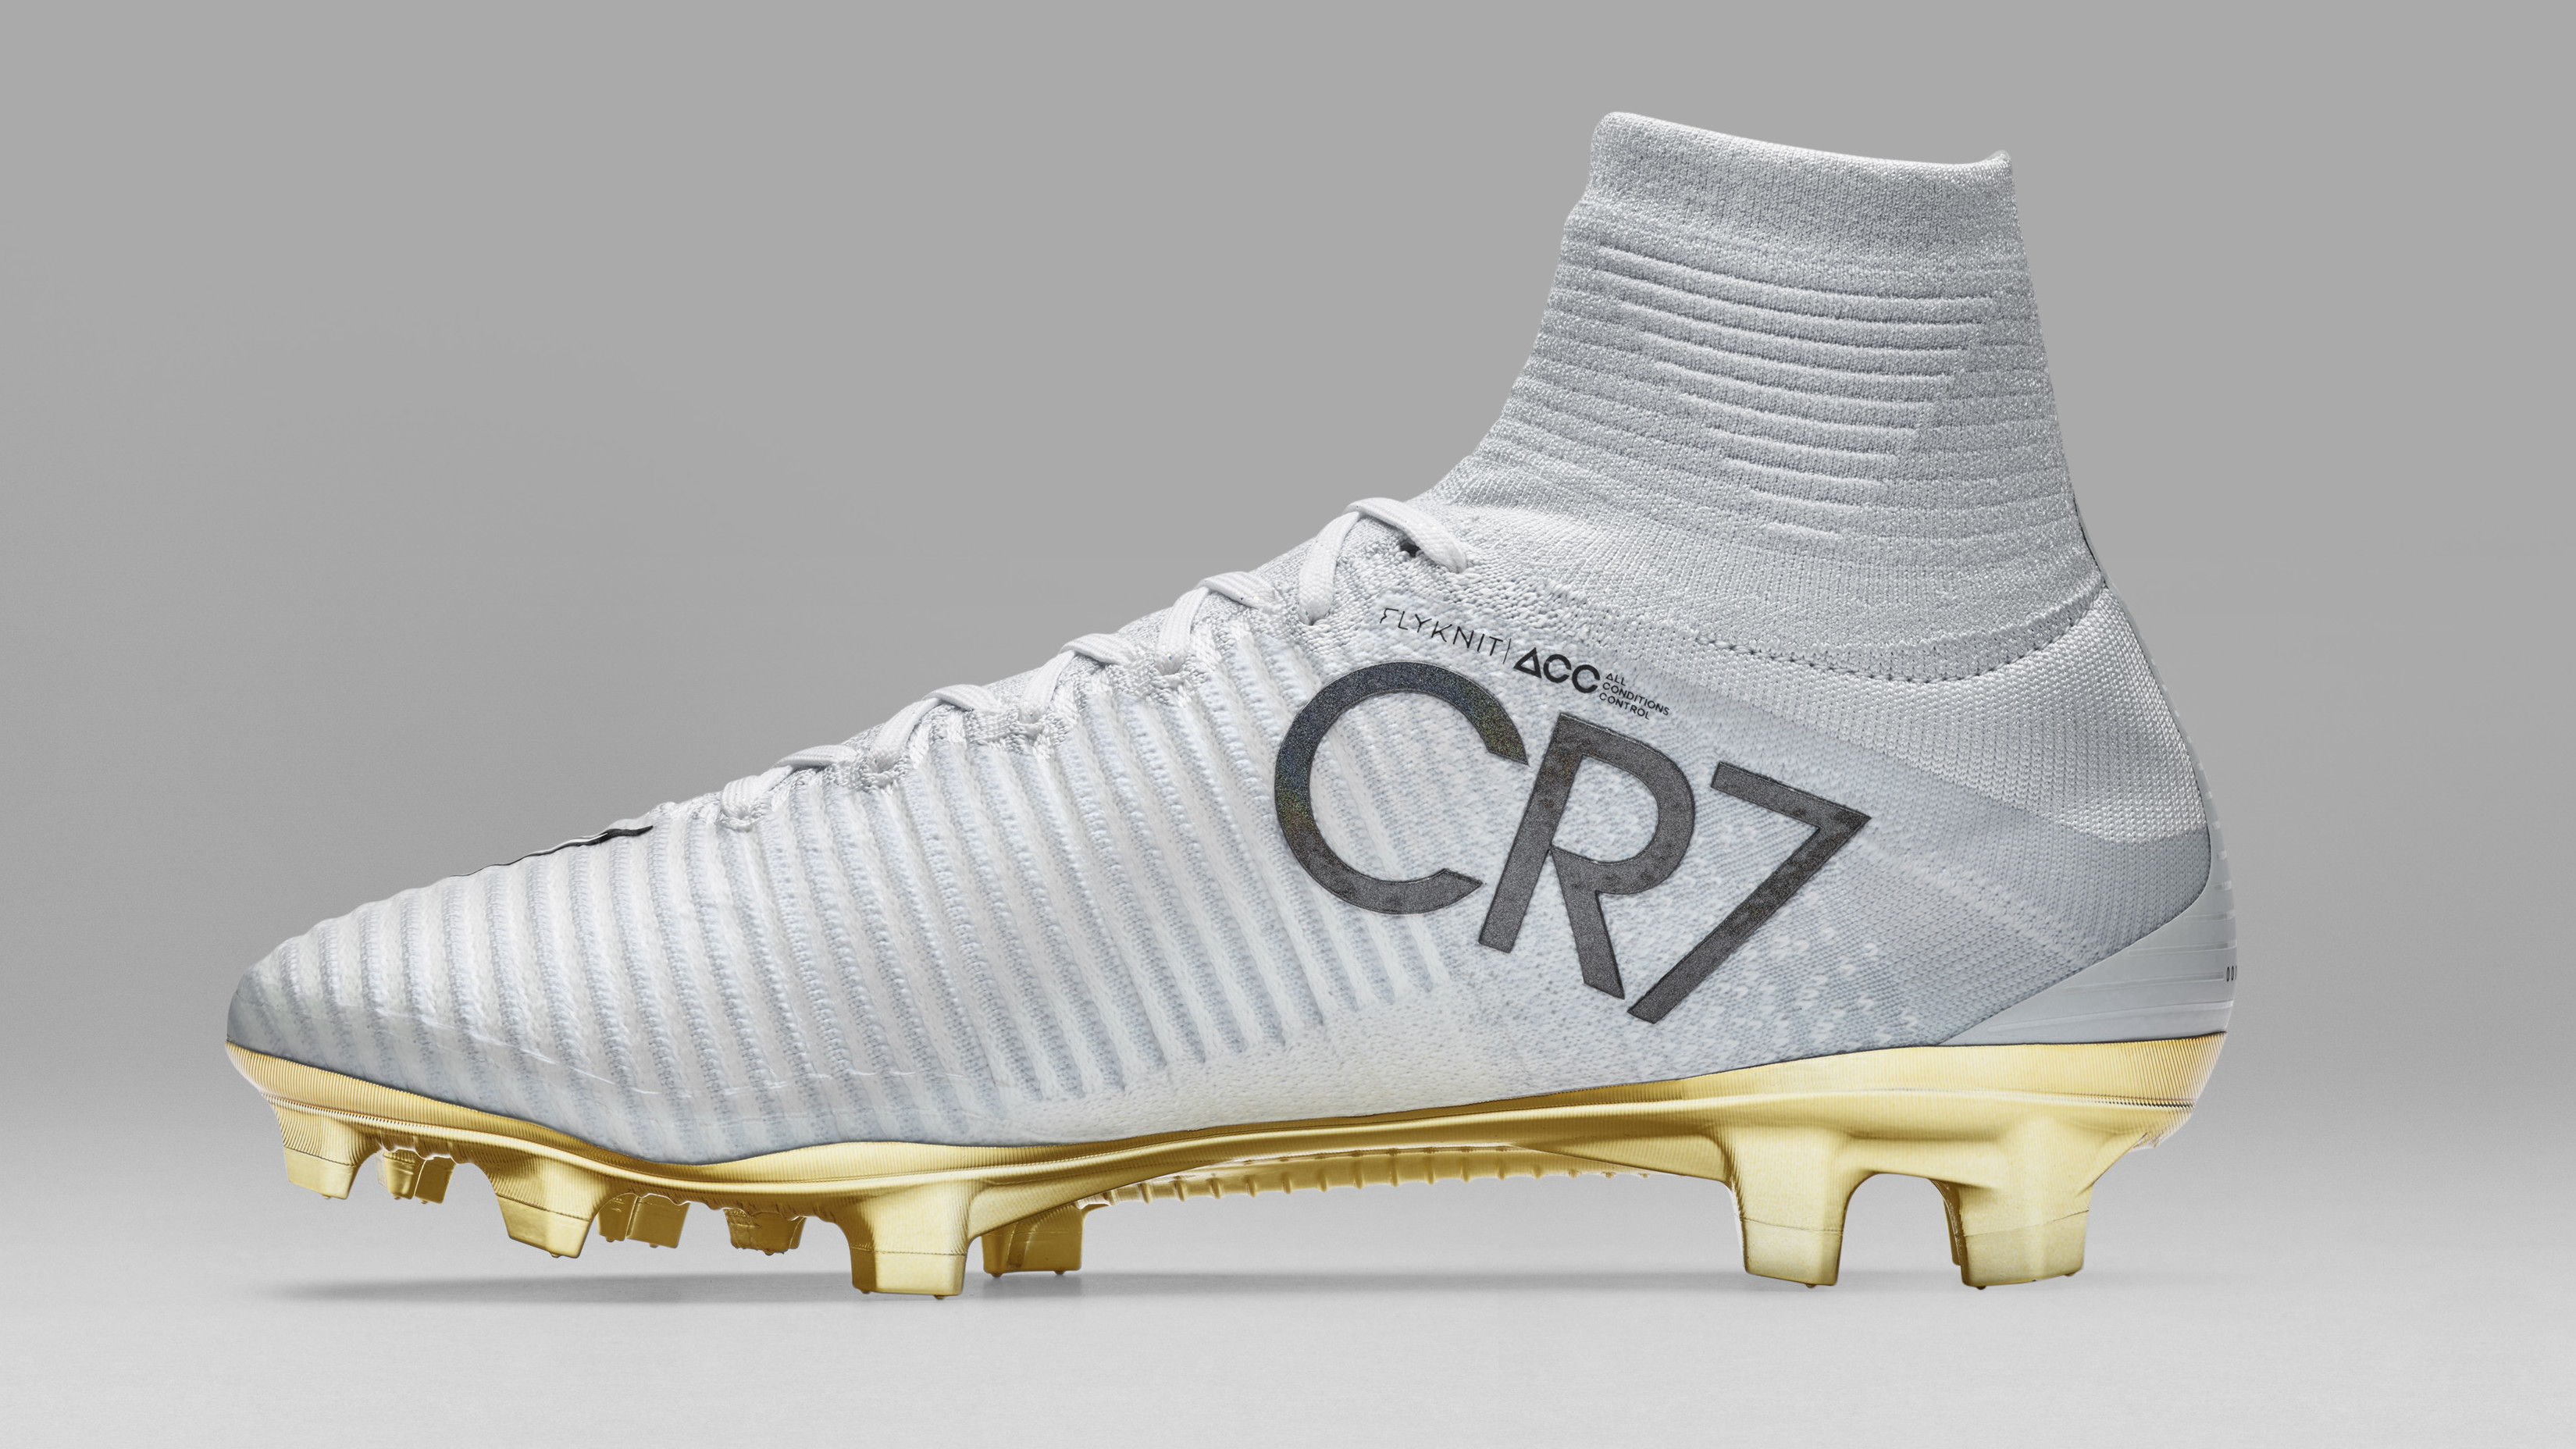 Nike Mercurial Superfly CR7 Vitorias medial